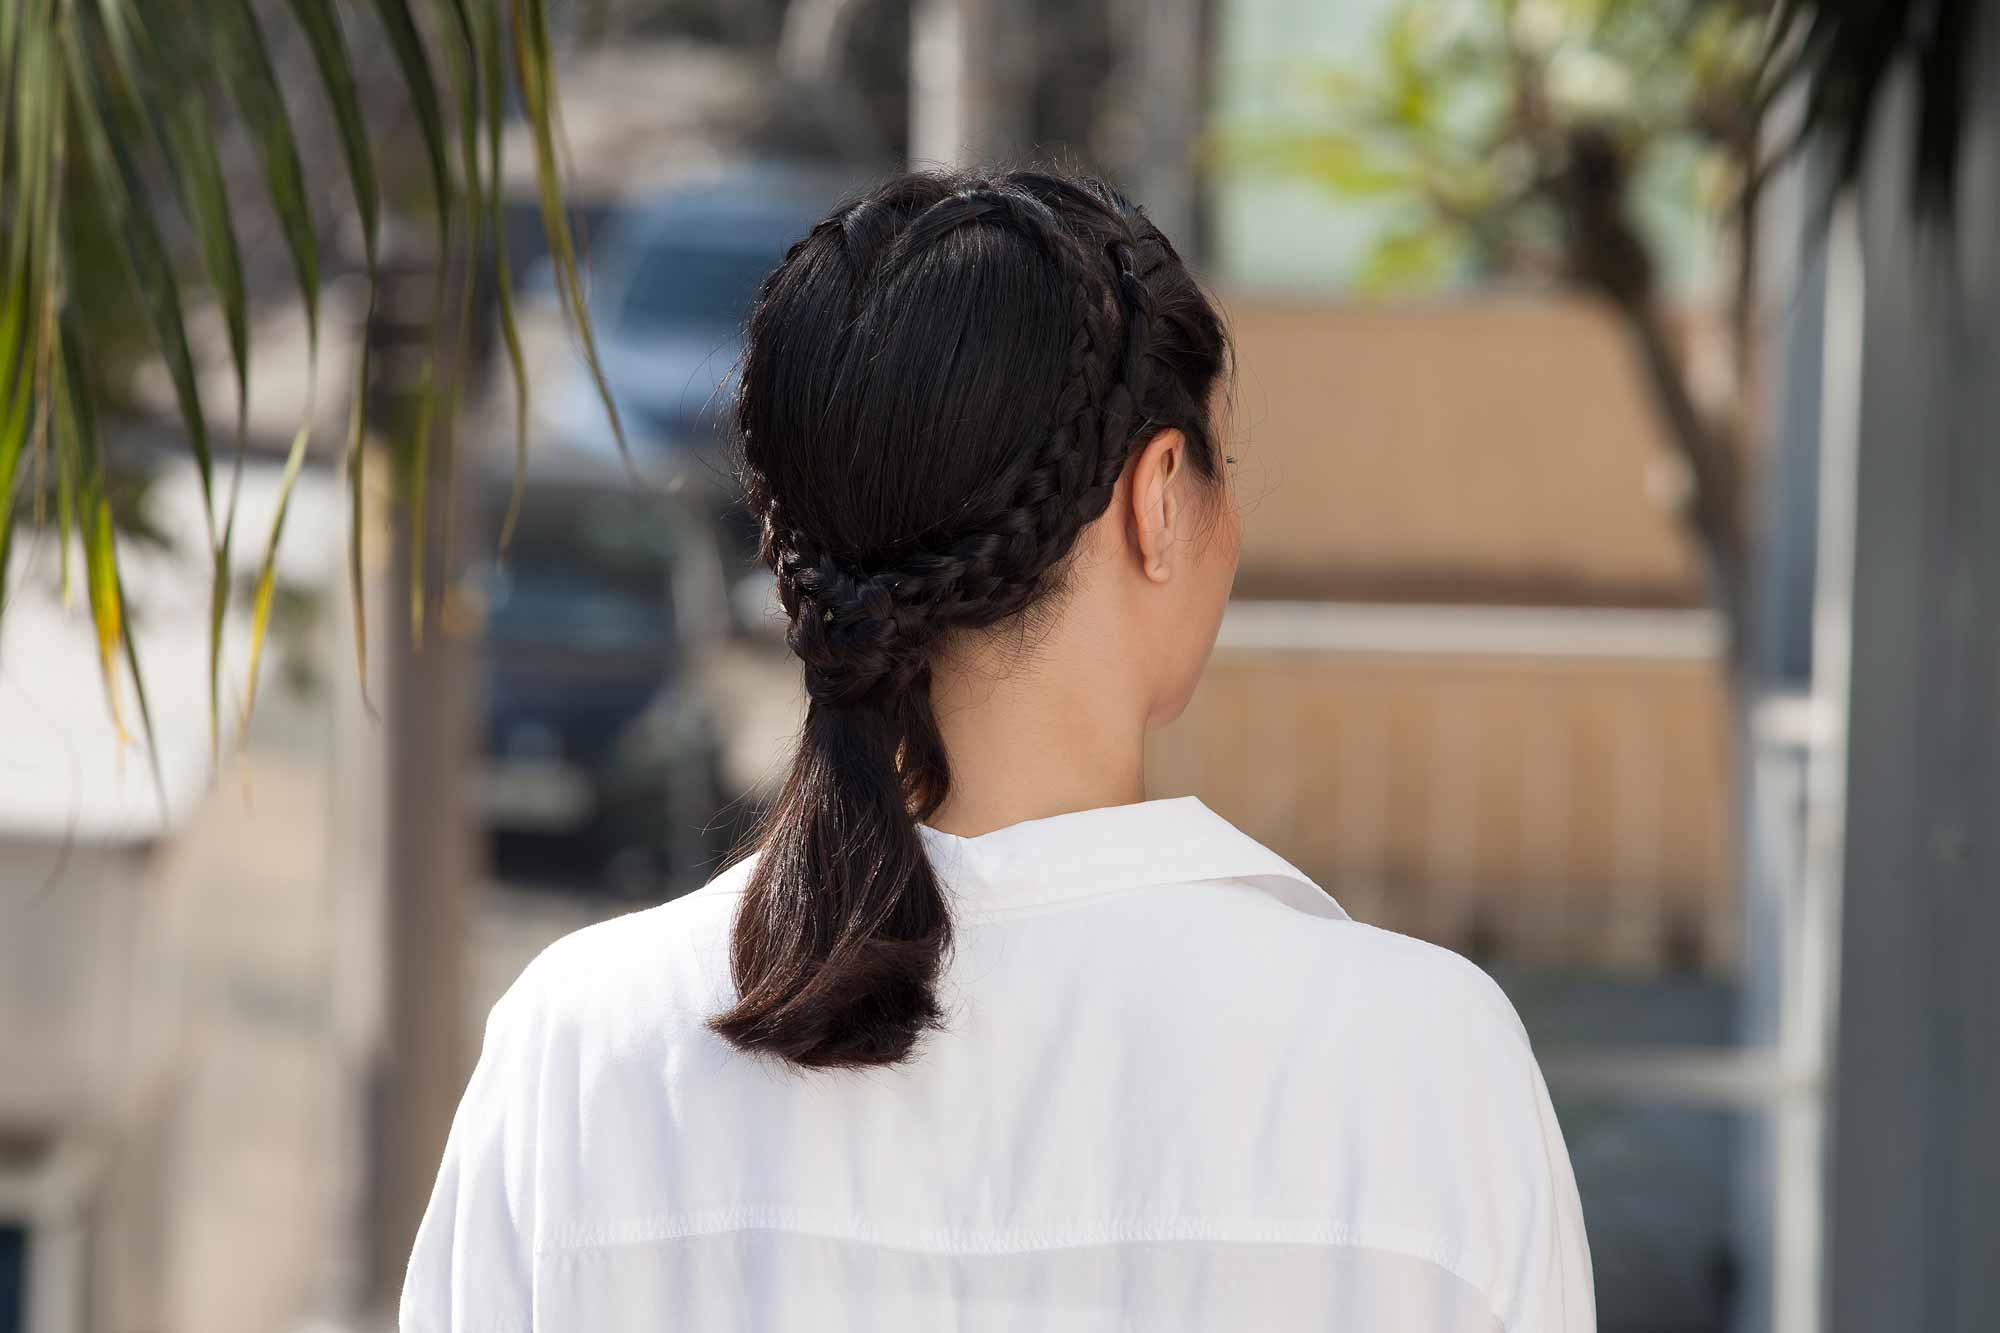 close up shot of model with heart braid ponytail hairstyle, wearing white blouse and posing outside